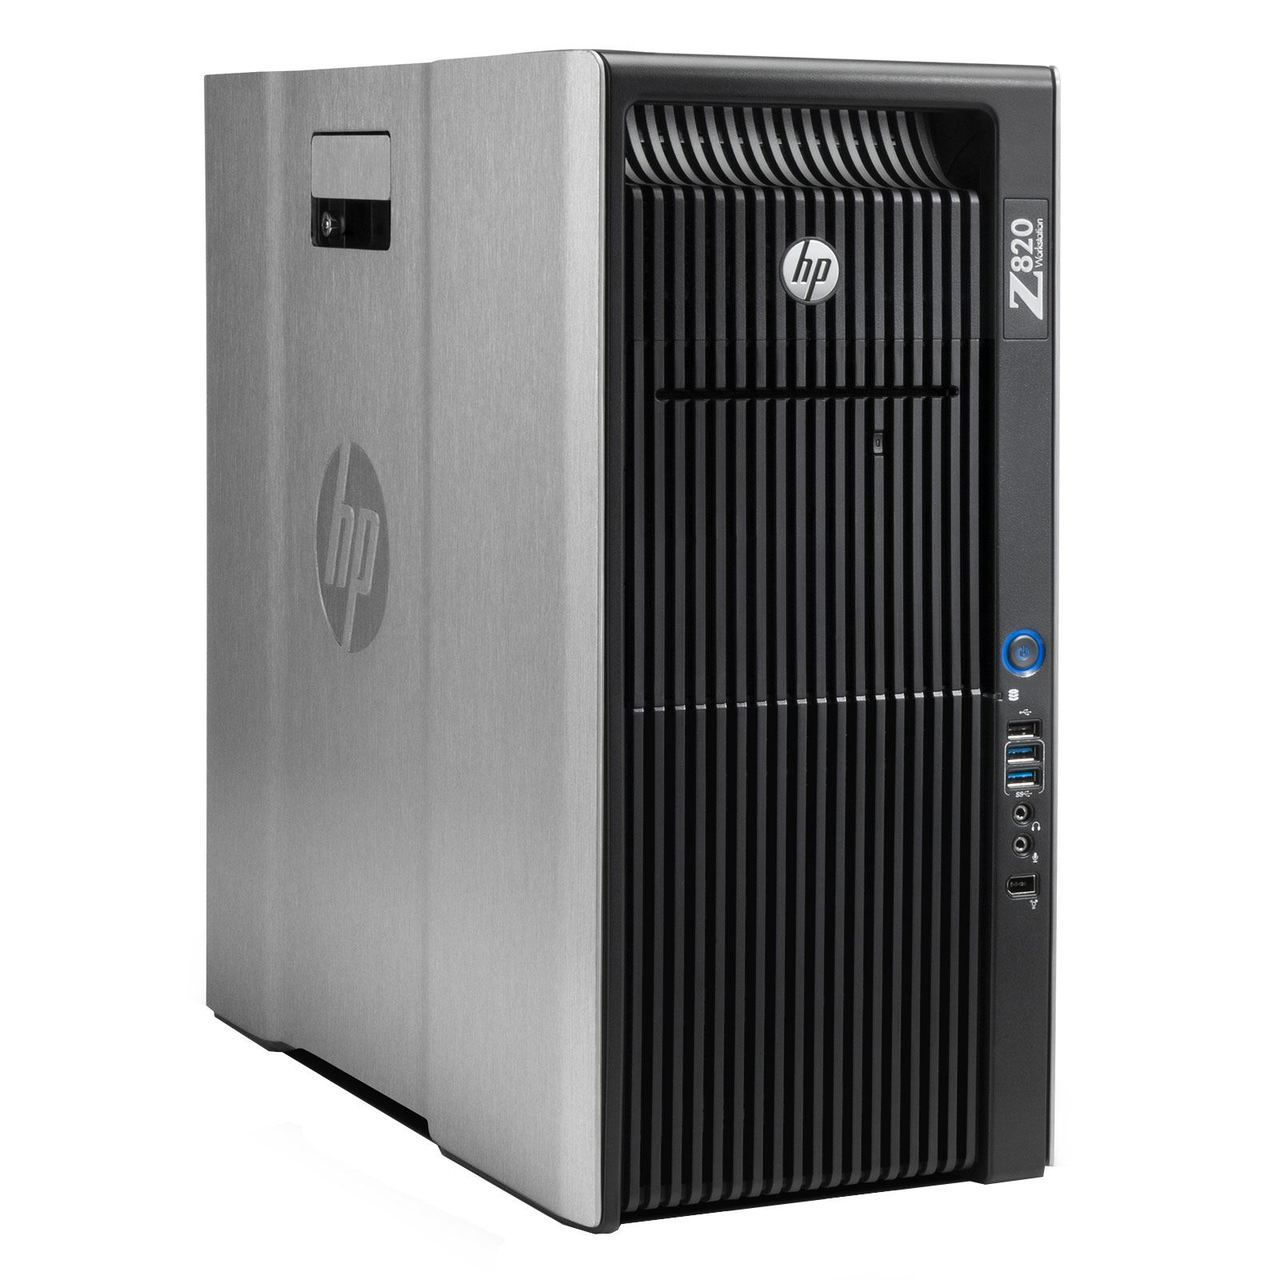 中古 HP Z820 Workstation E5-2665 2CPU Win7 K2000